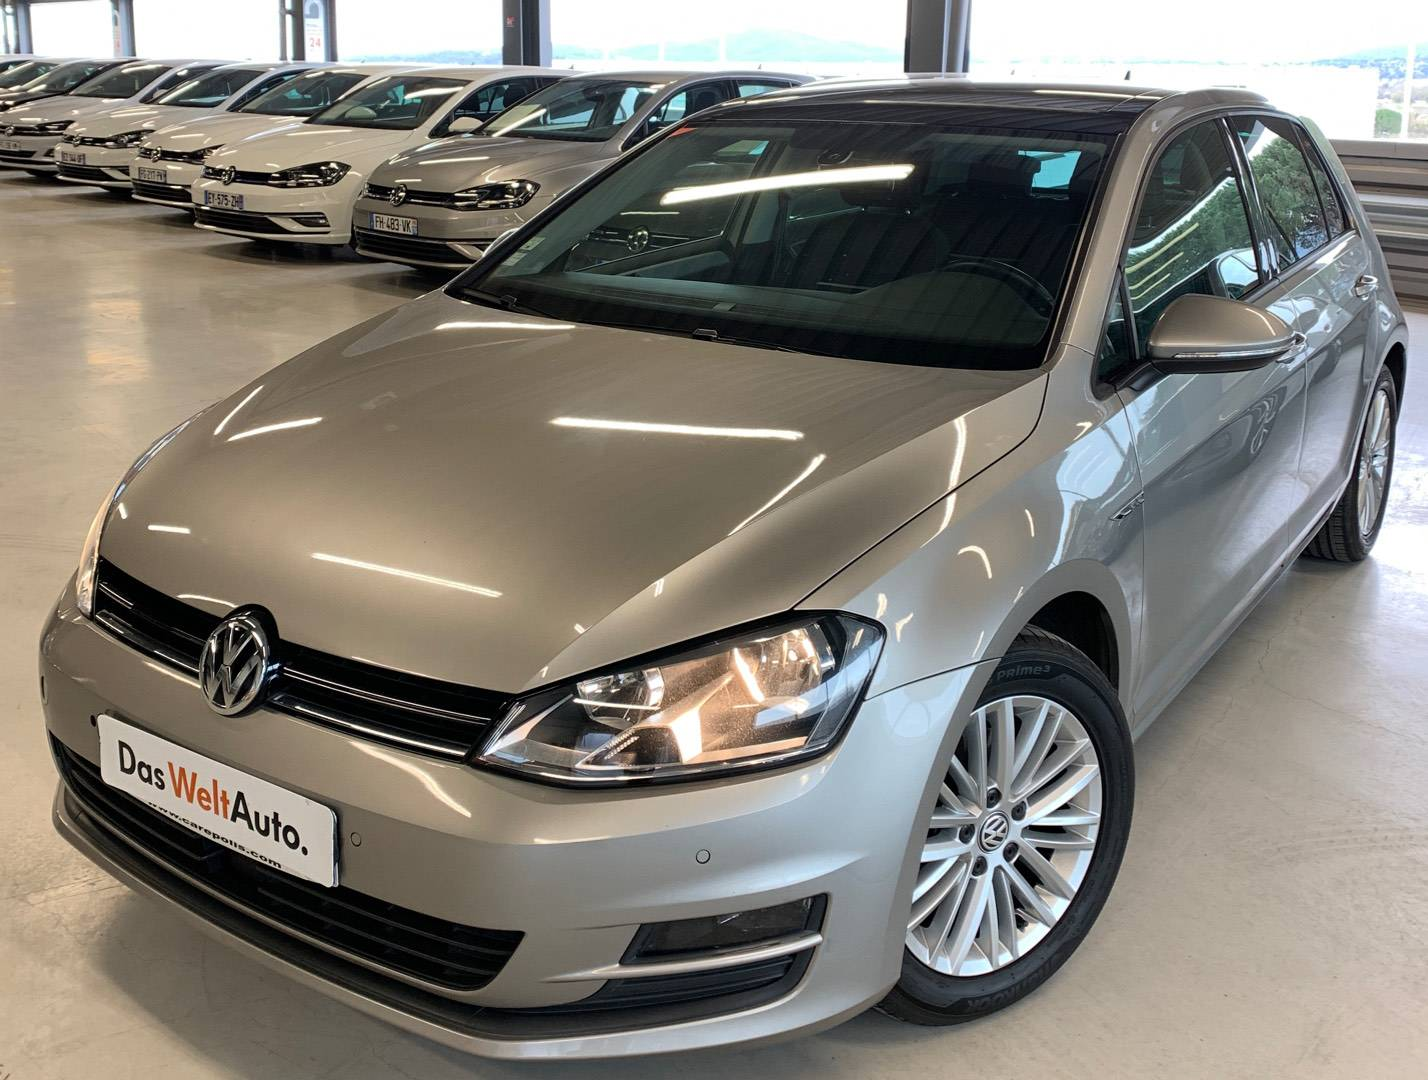 Golf 1.4 TSI 140 ACT BlueMotion Technology